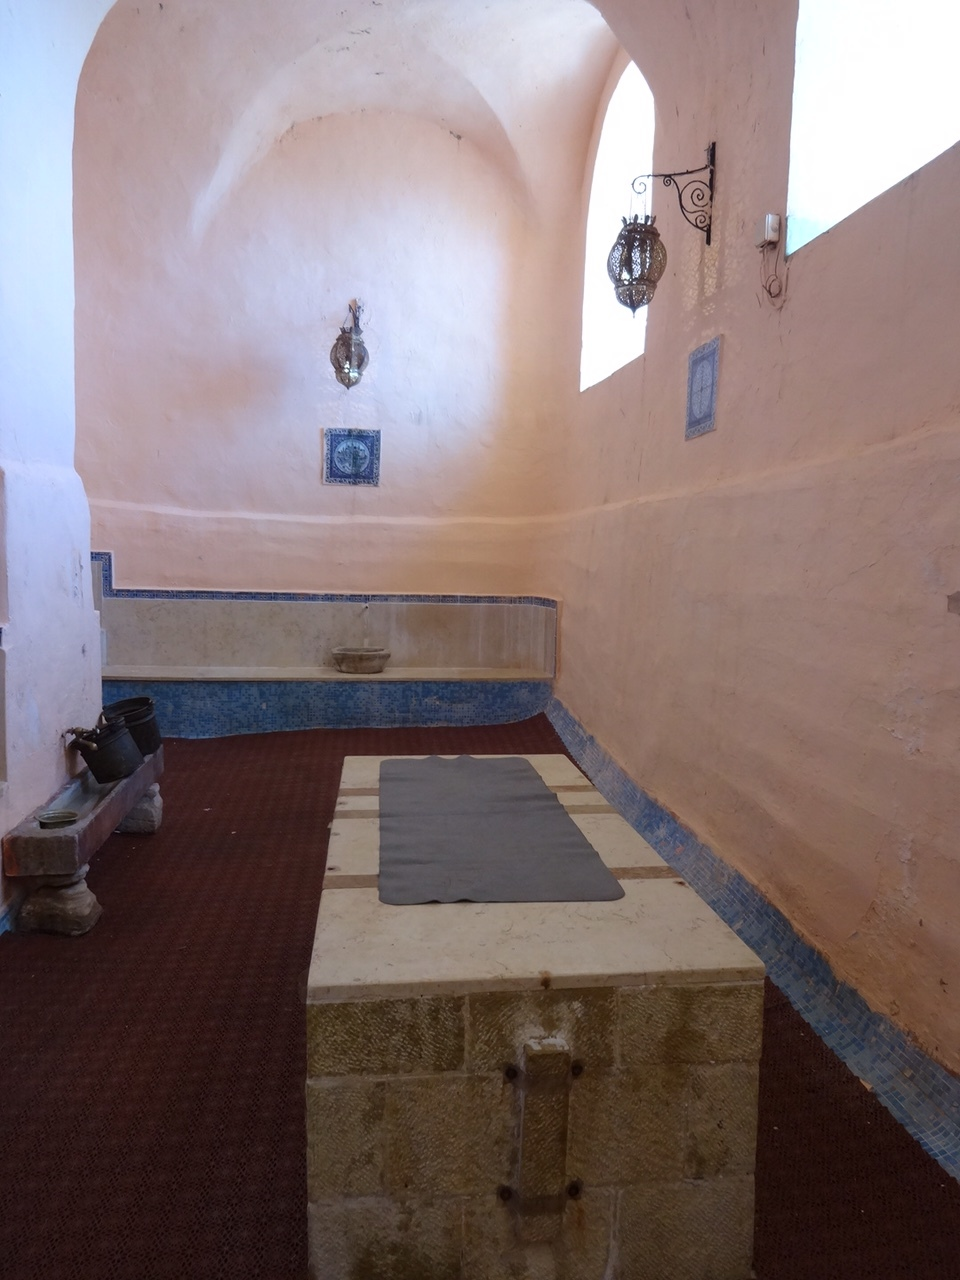 Steam bath in the Hamam